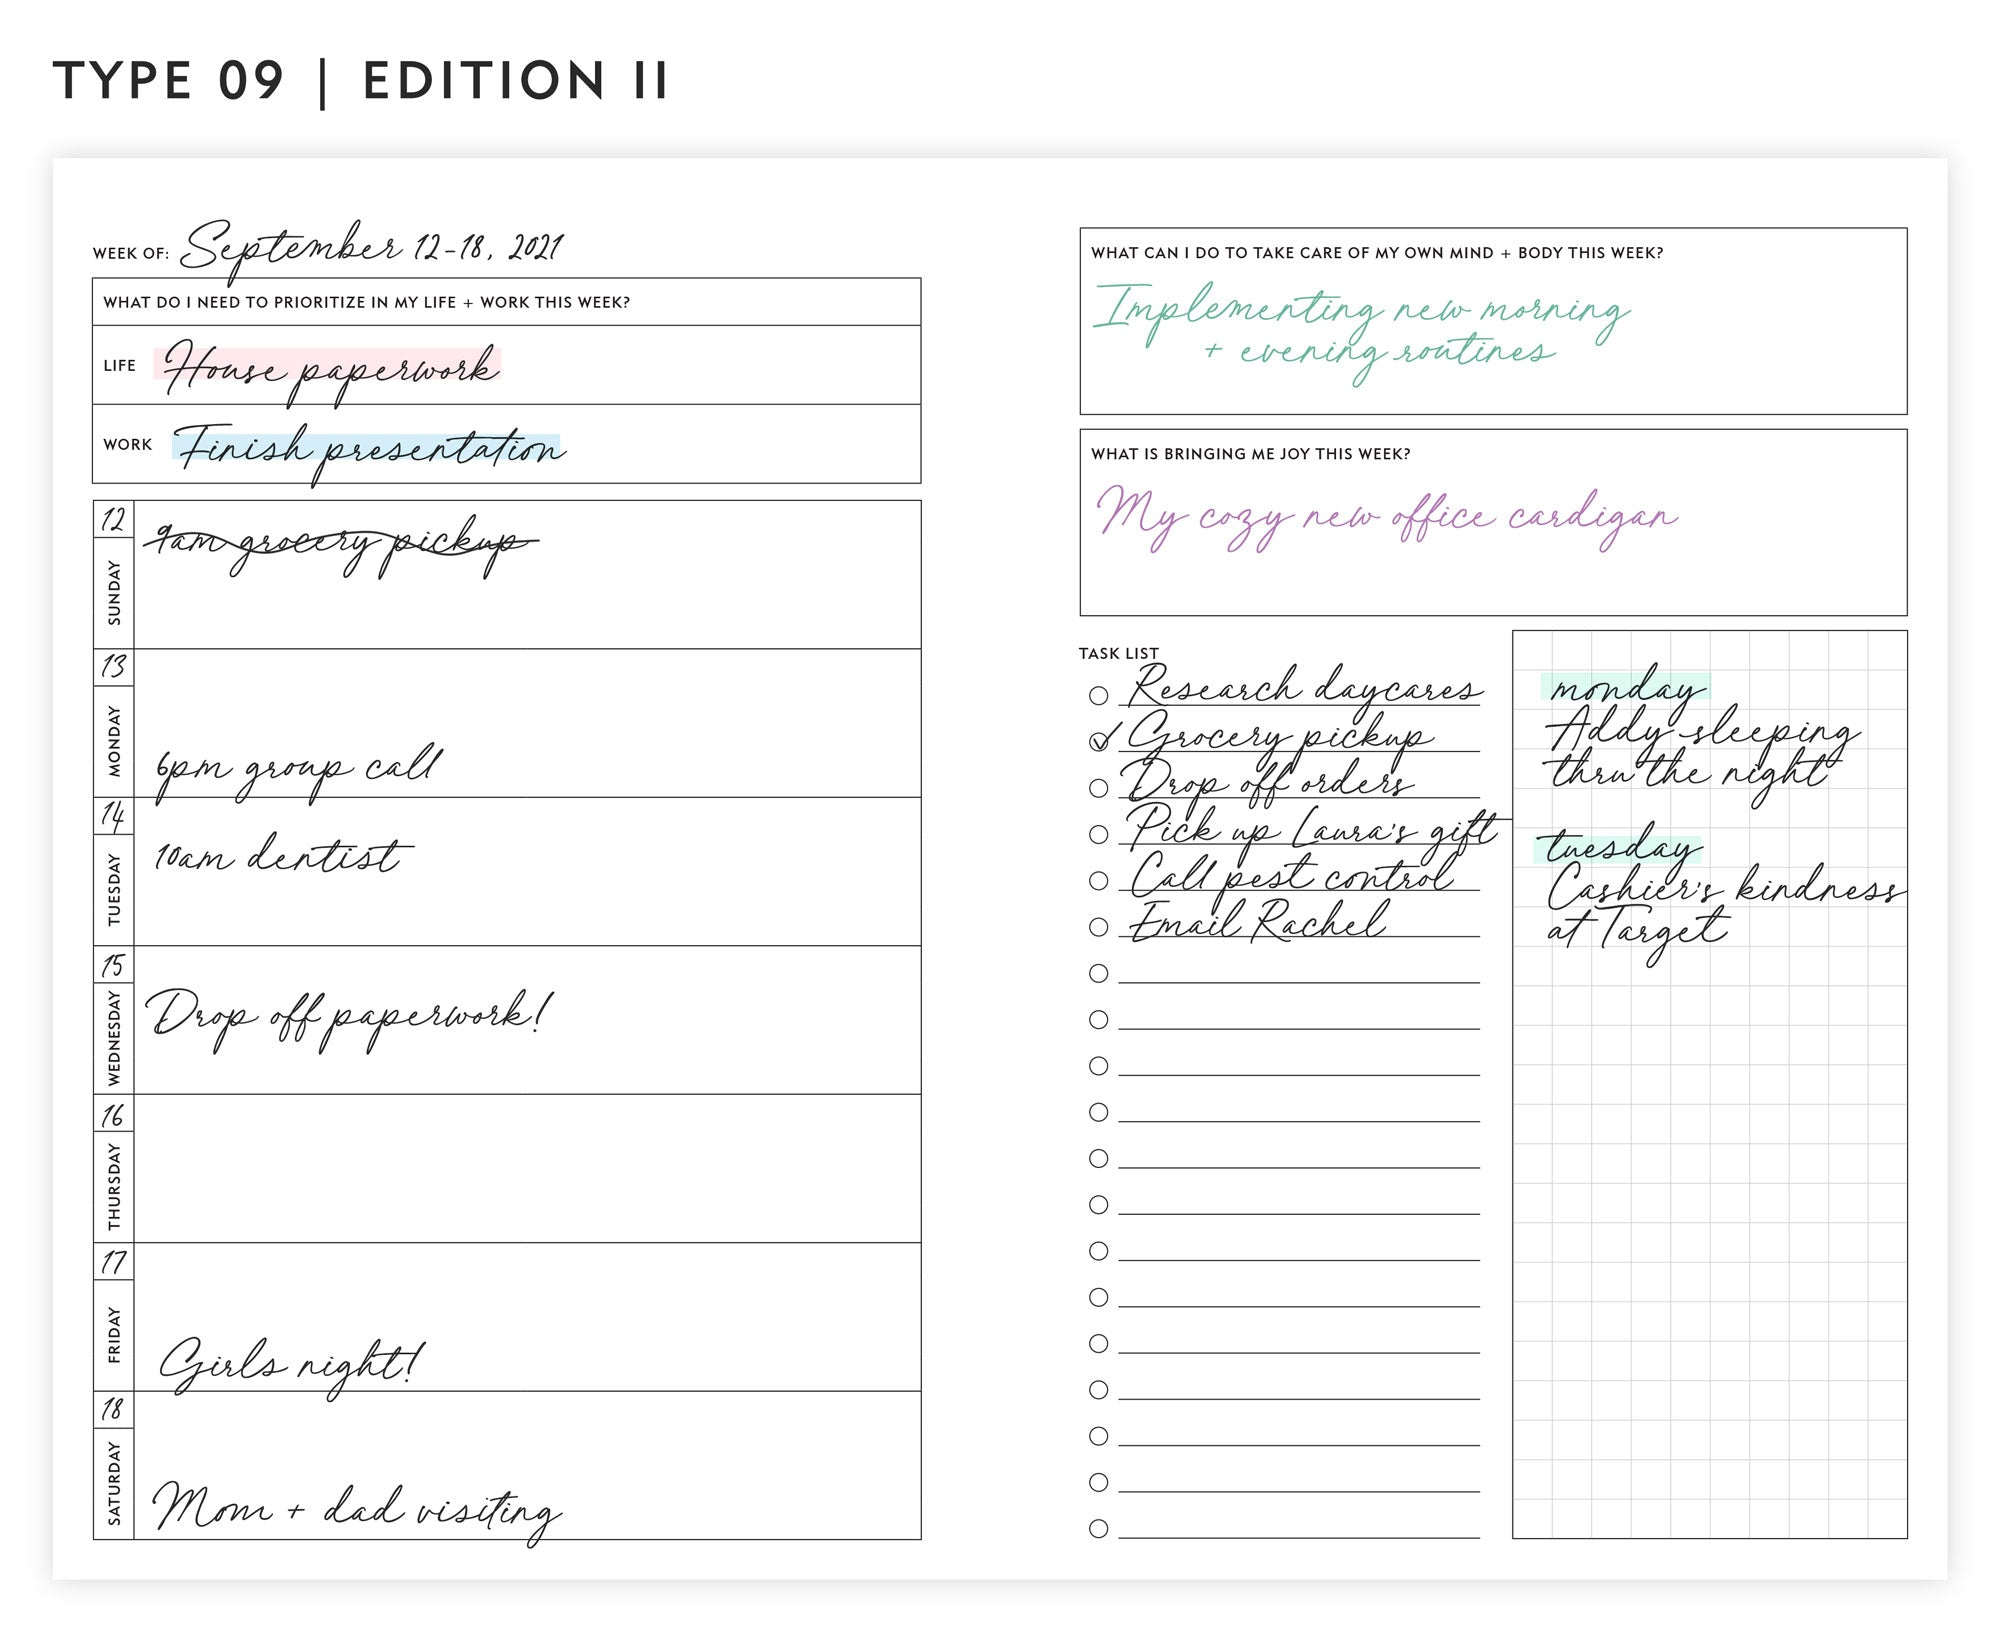 Guided Enneagram Planner Type 09   Edition II